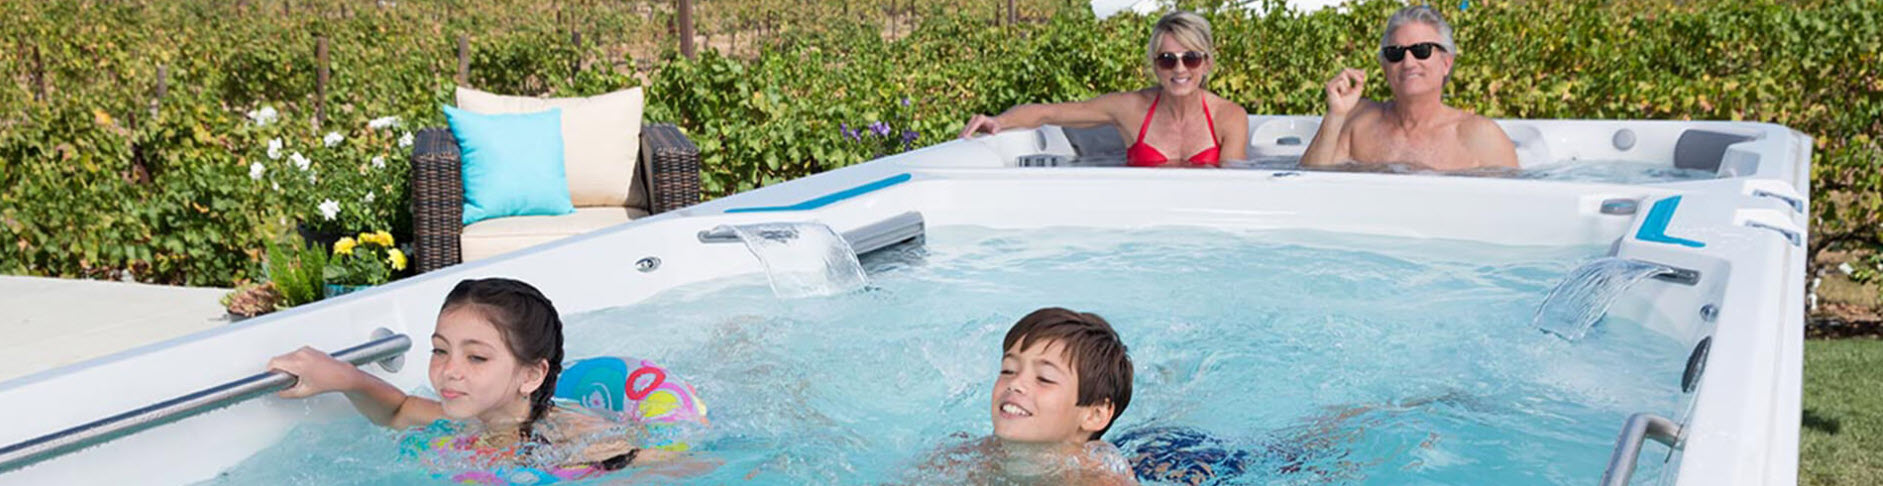 Soothe Chronic Pain with a Lap Pool at Home, Swim Spas Dealer Cody